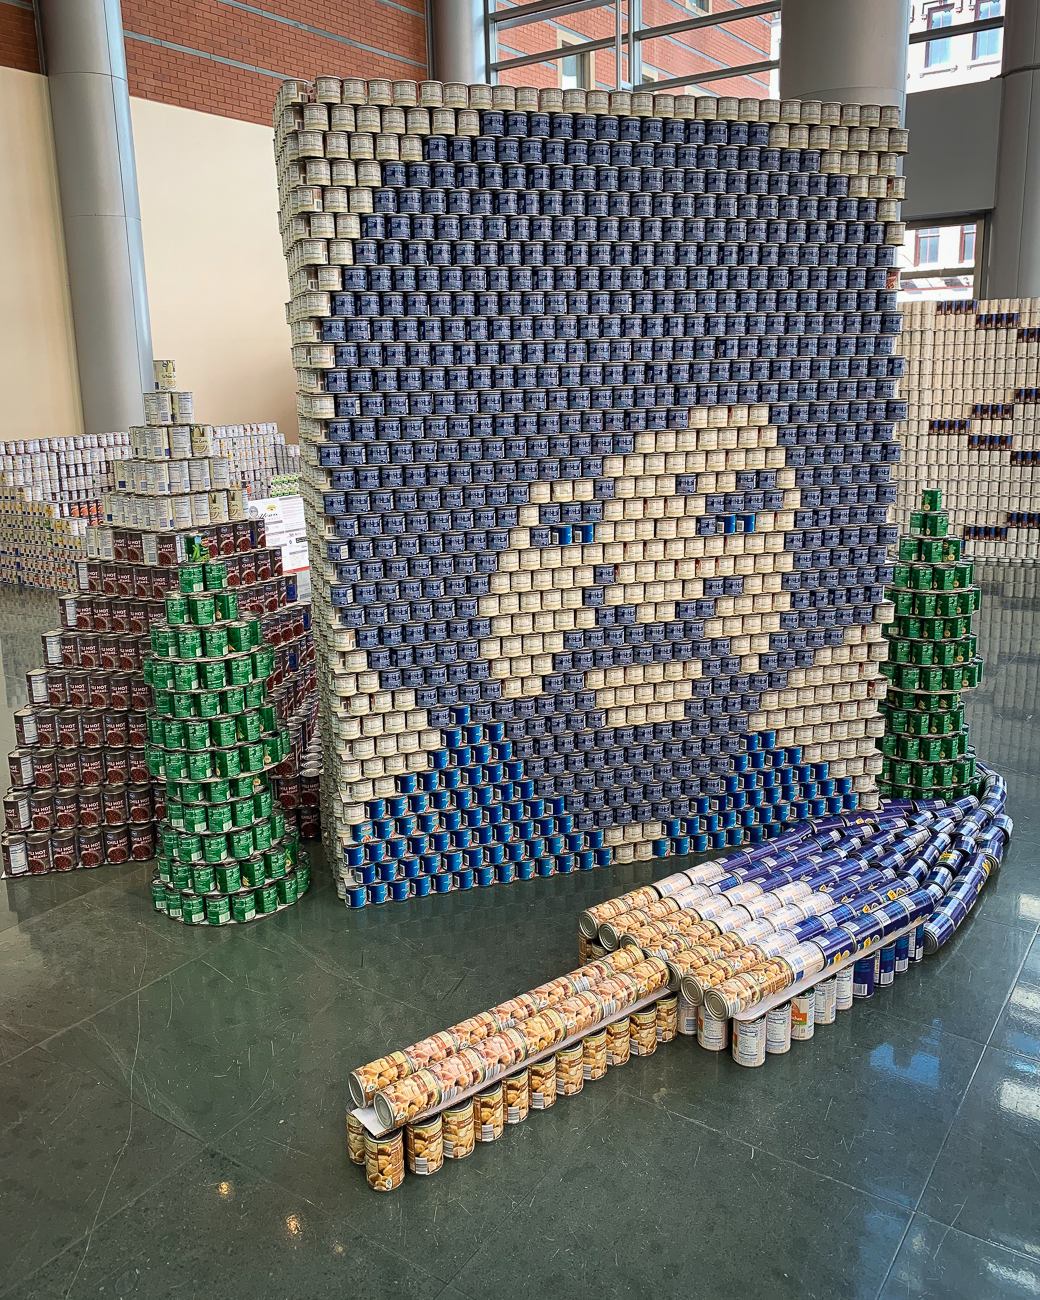 Structure: Happy Little Cans / Team: Champlin Architecture / Location: The Weston Art Gallery in the Aronoff Center for the Arts / Image: Phil Armstrong, Cincinnati Refined // Published: 3.28.19